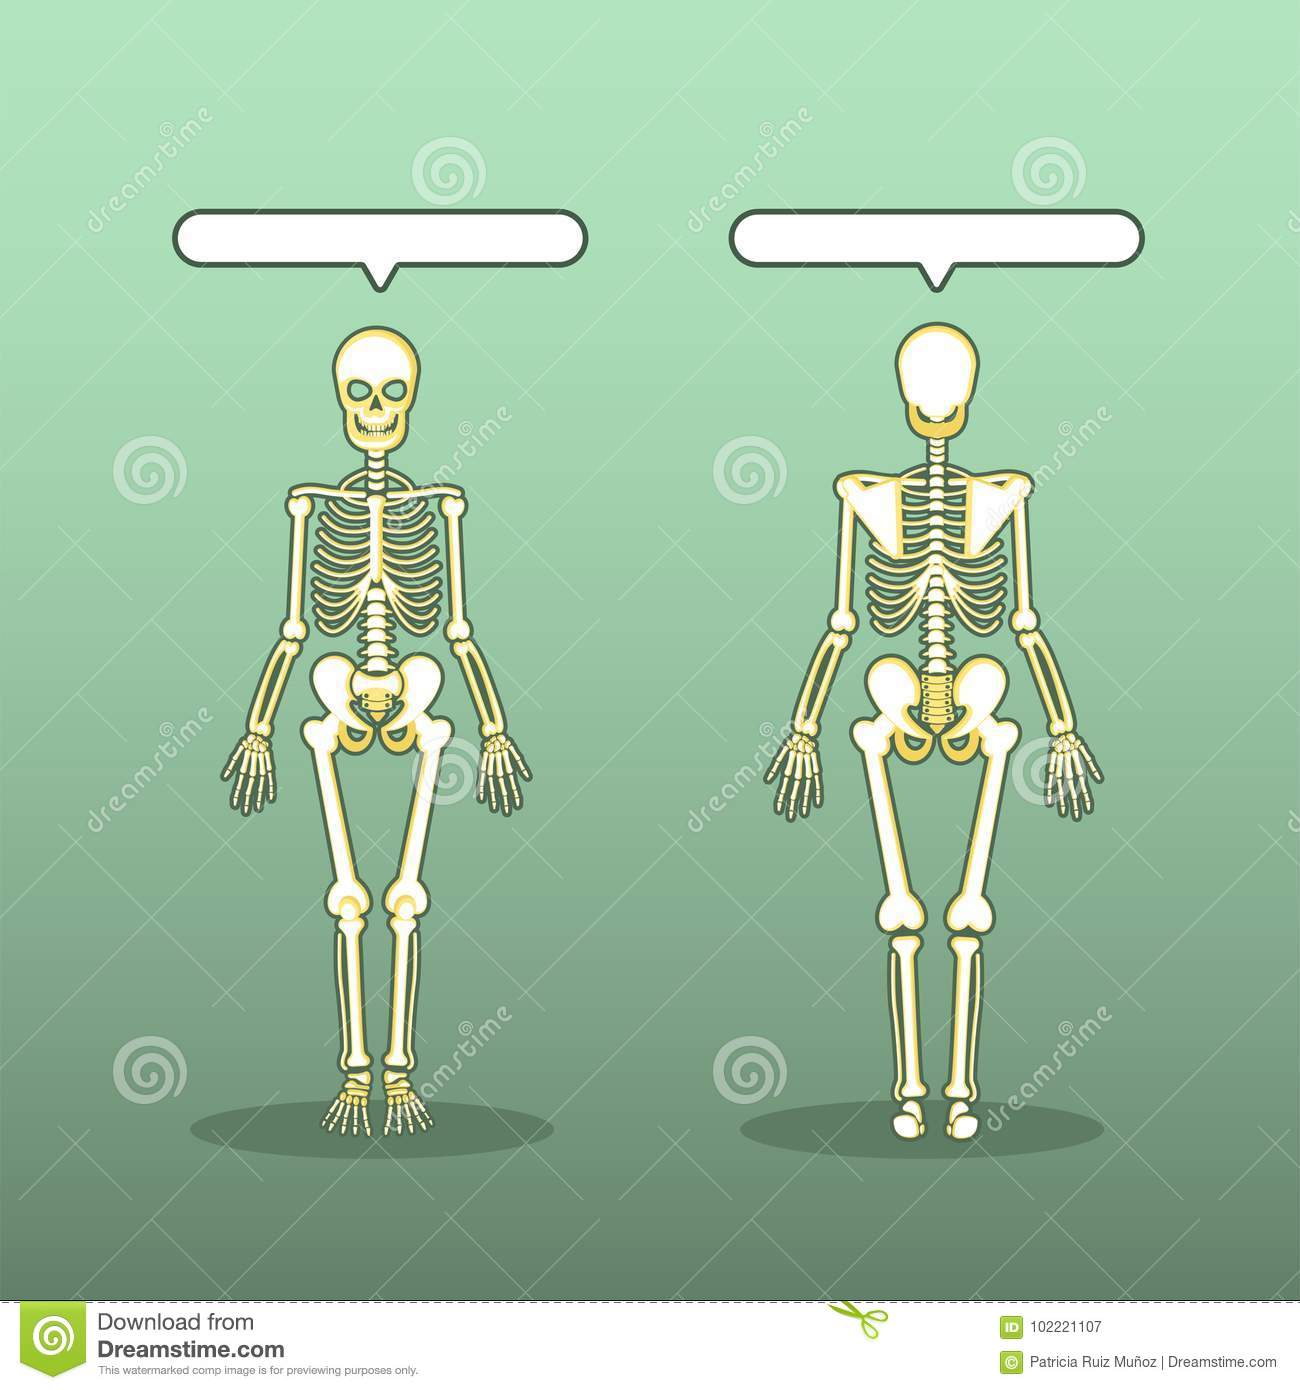 Skeletom Human Body Anatomy Stock Vector Illustration Of Clavicle